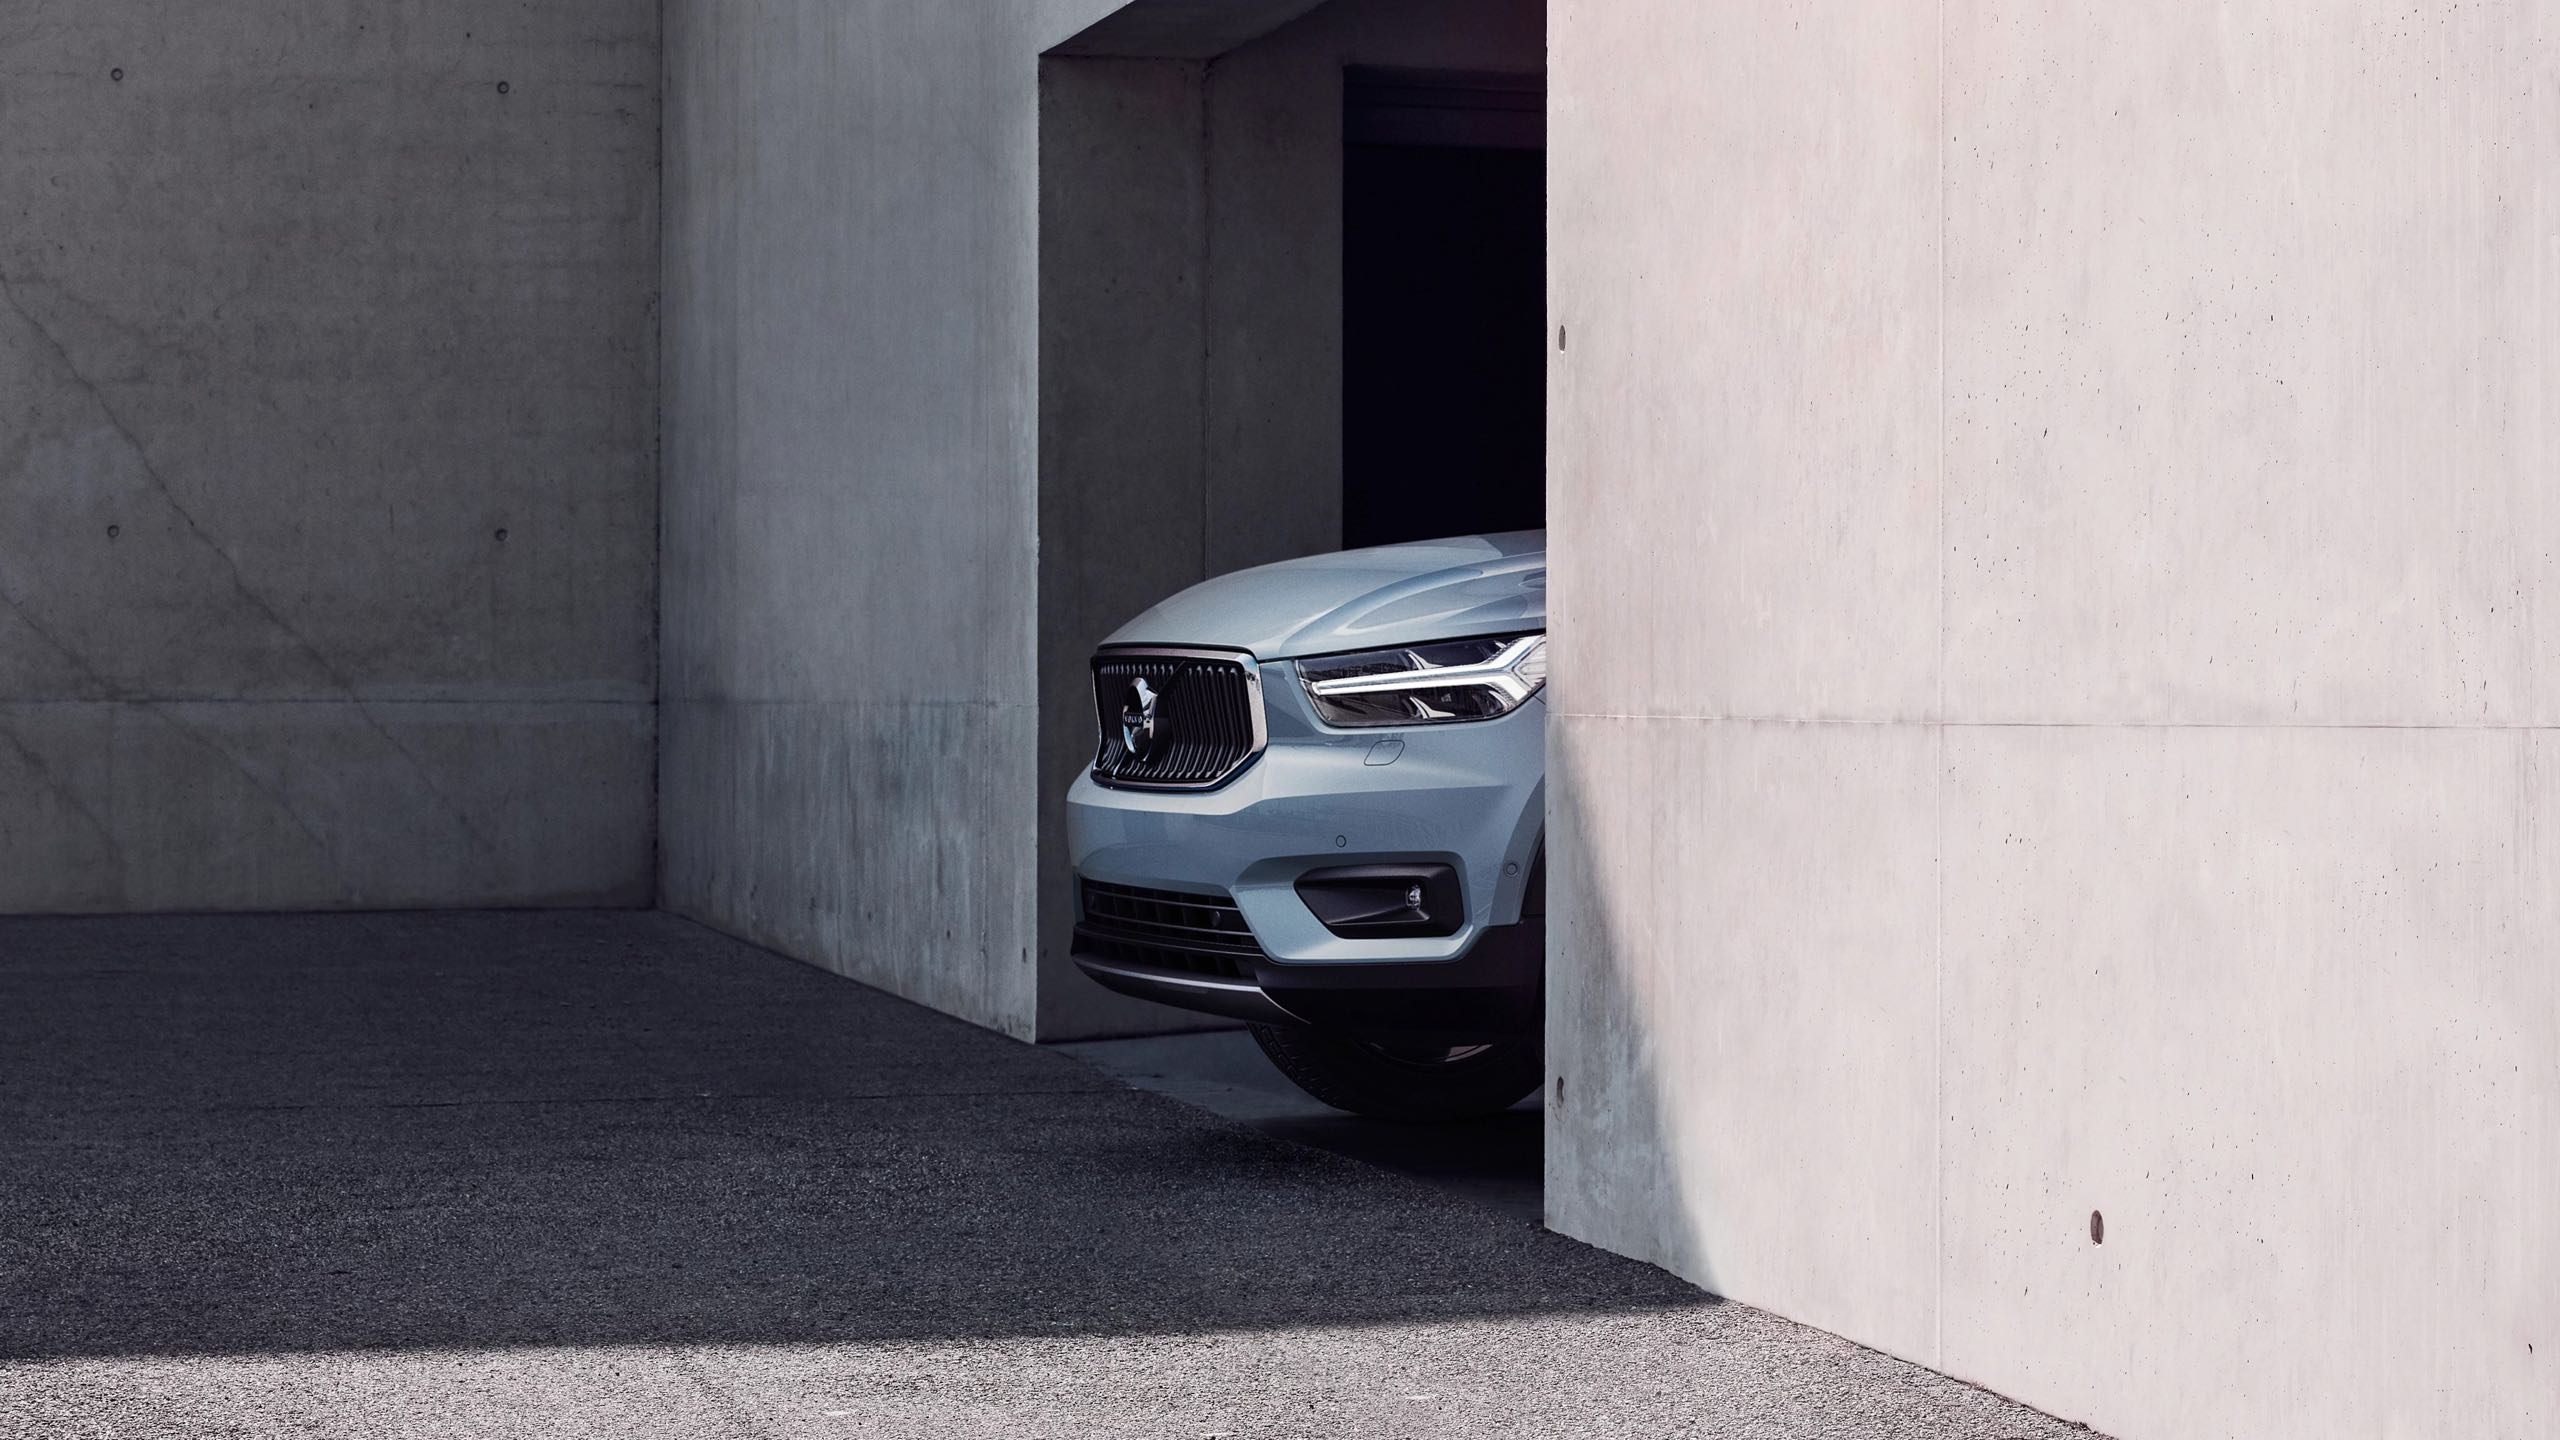 New Volvo XC40 Front -  2017, 2018, 2018 New XC40, Design, Detail, Exterior, Images, New XC40